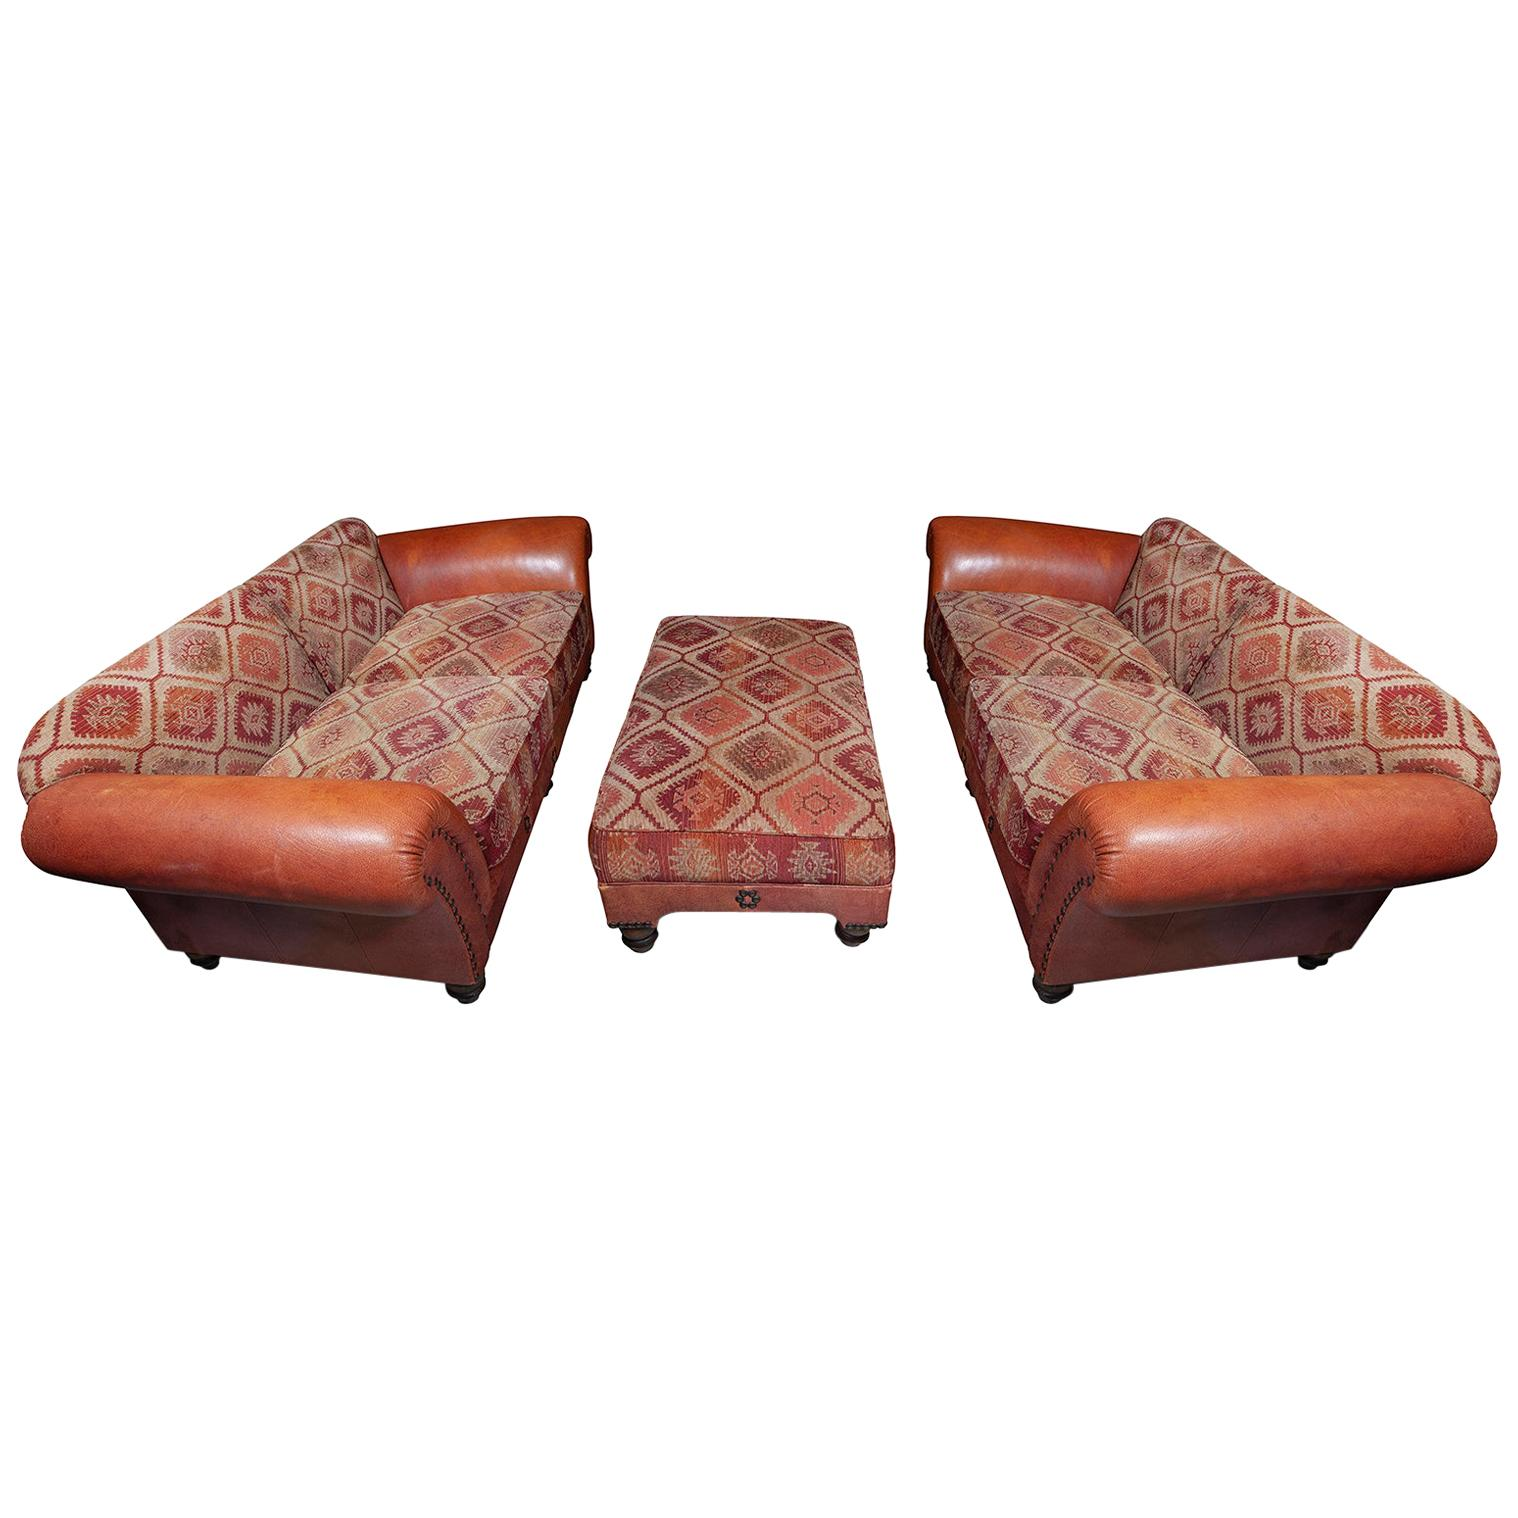 Sofa Settee 3-Seat Pair of Ottoman Leather Kelim Country House, 1980s